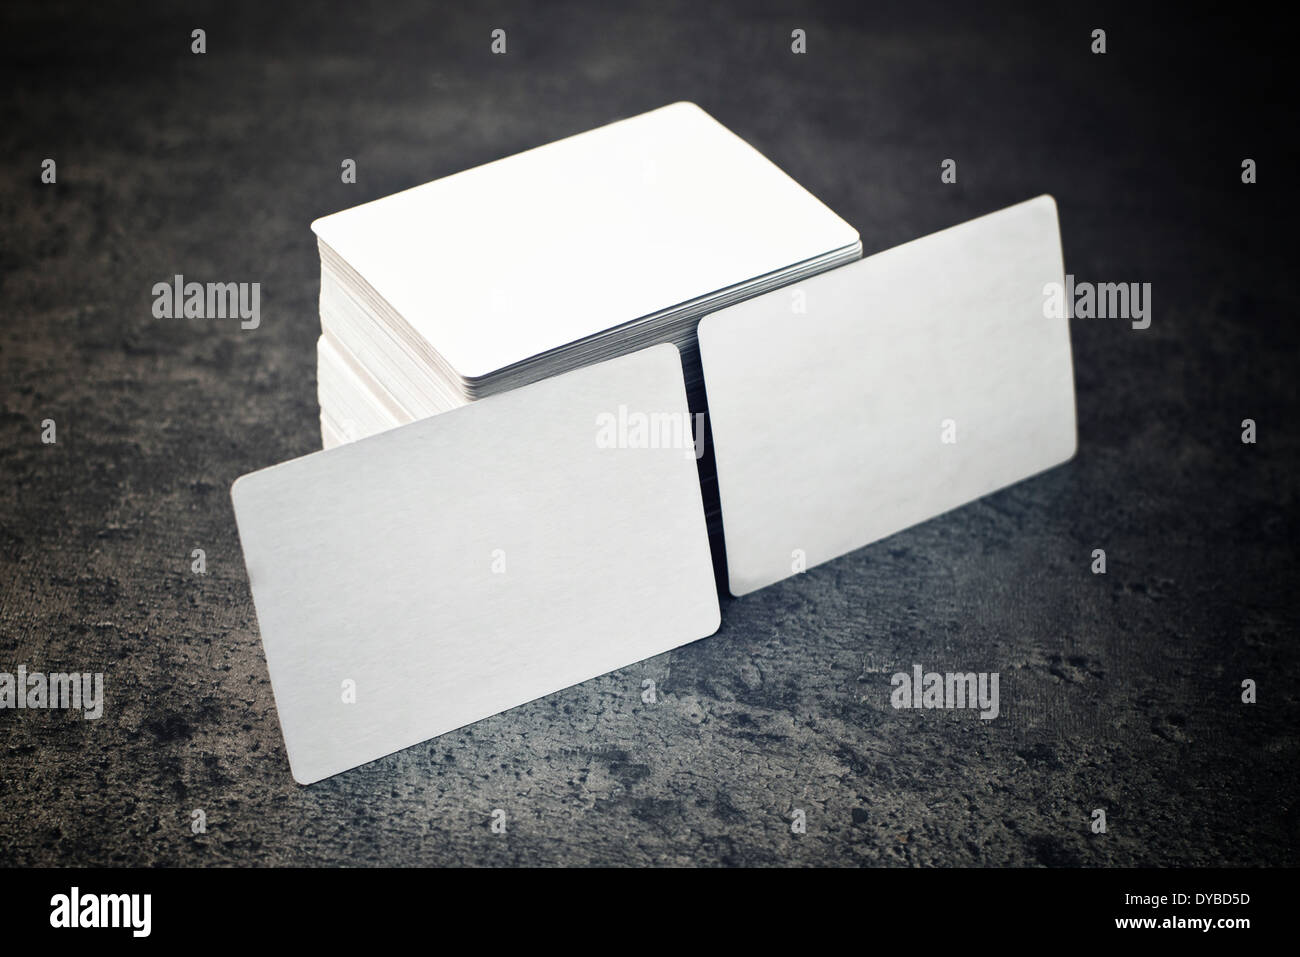 Blank business cards with rounded corners Stock Photo: 68478633 - Alamy